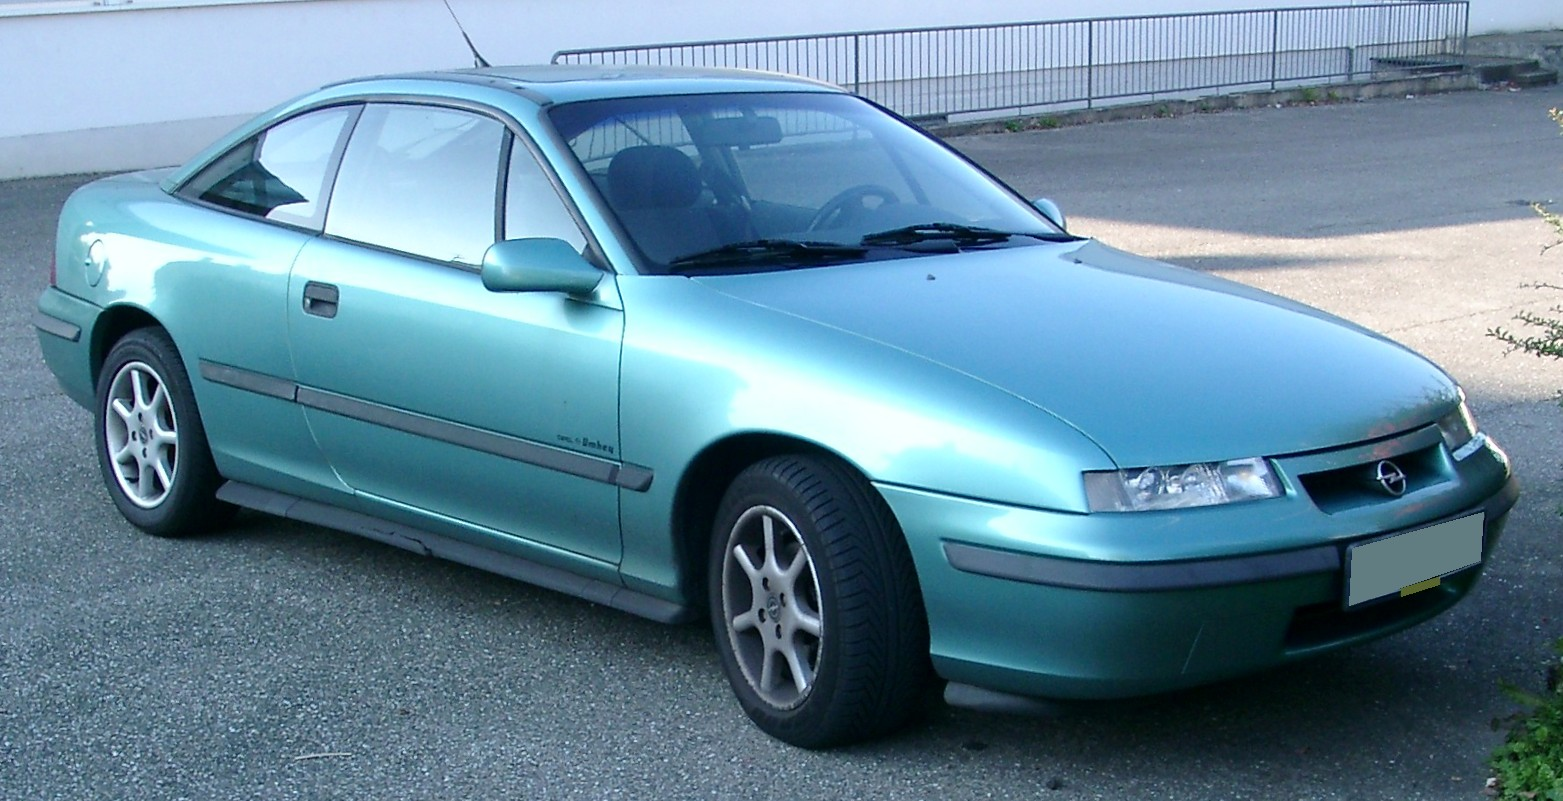 Cars opel calibra a 1993 #7